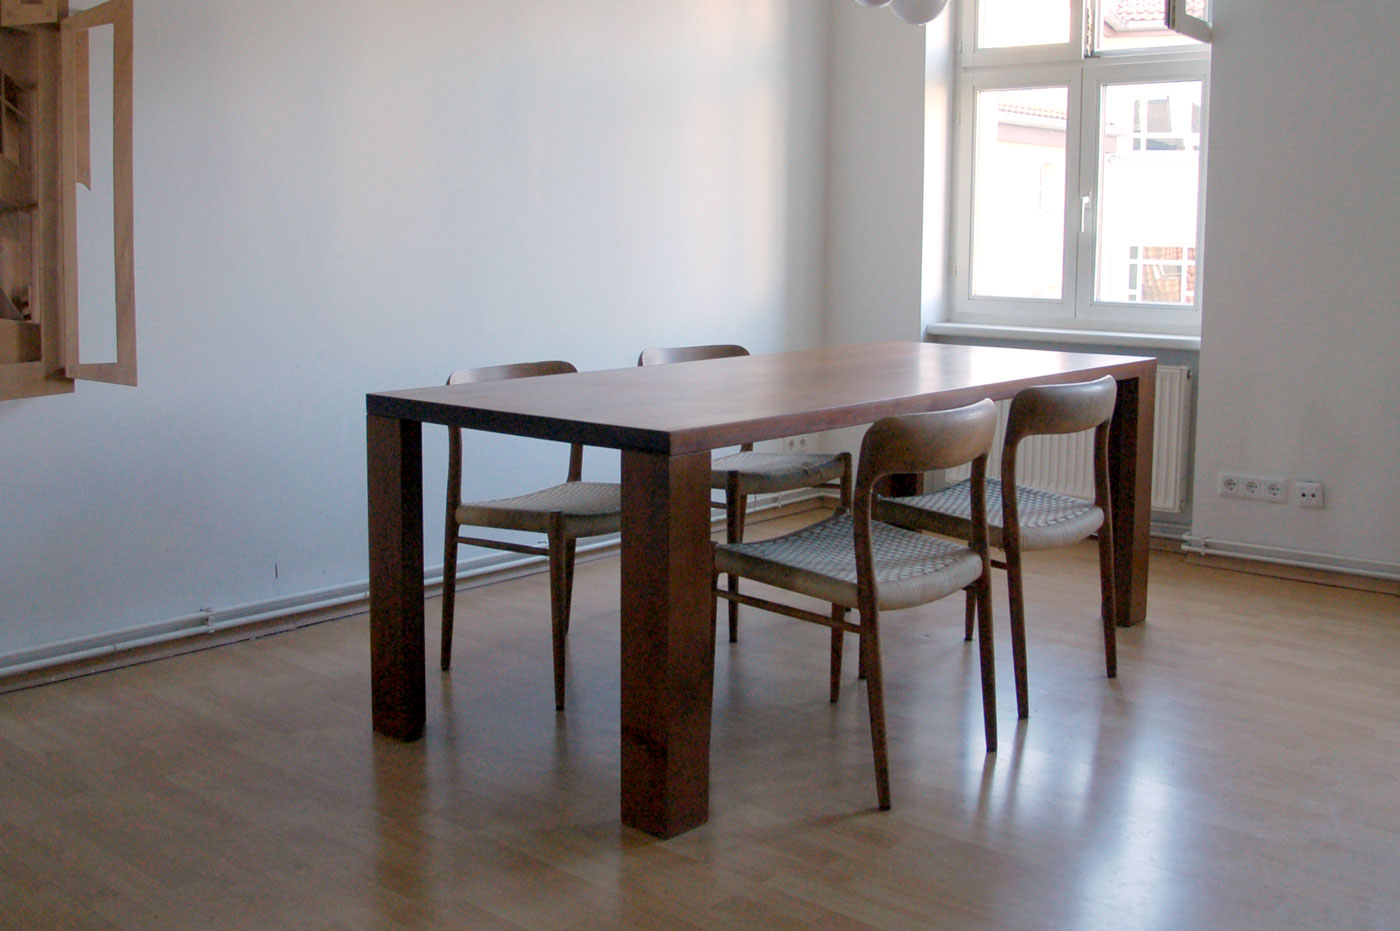 TABLE © 2007, solid South American walnut, oiled, 205 x 88 x 75 cm